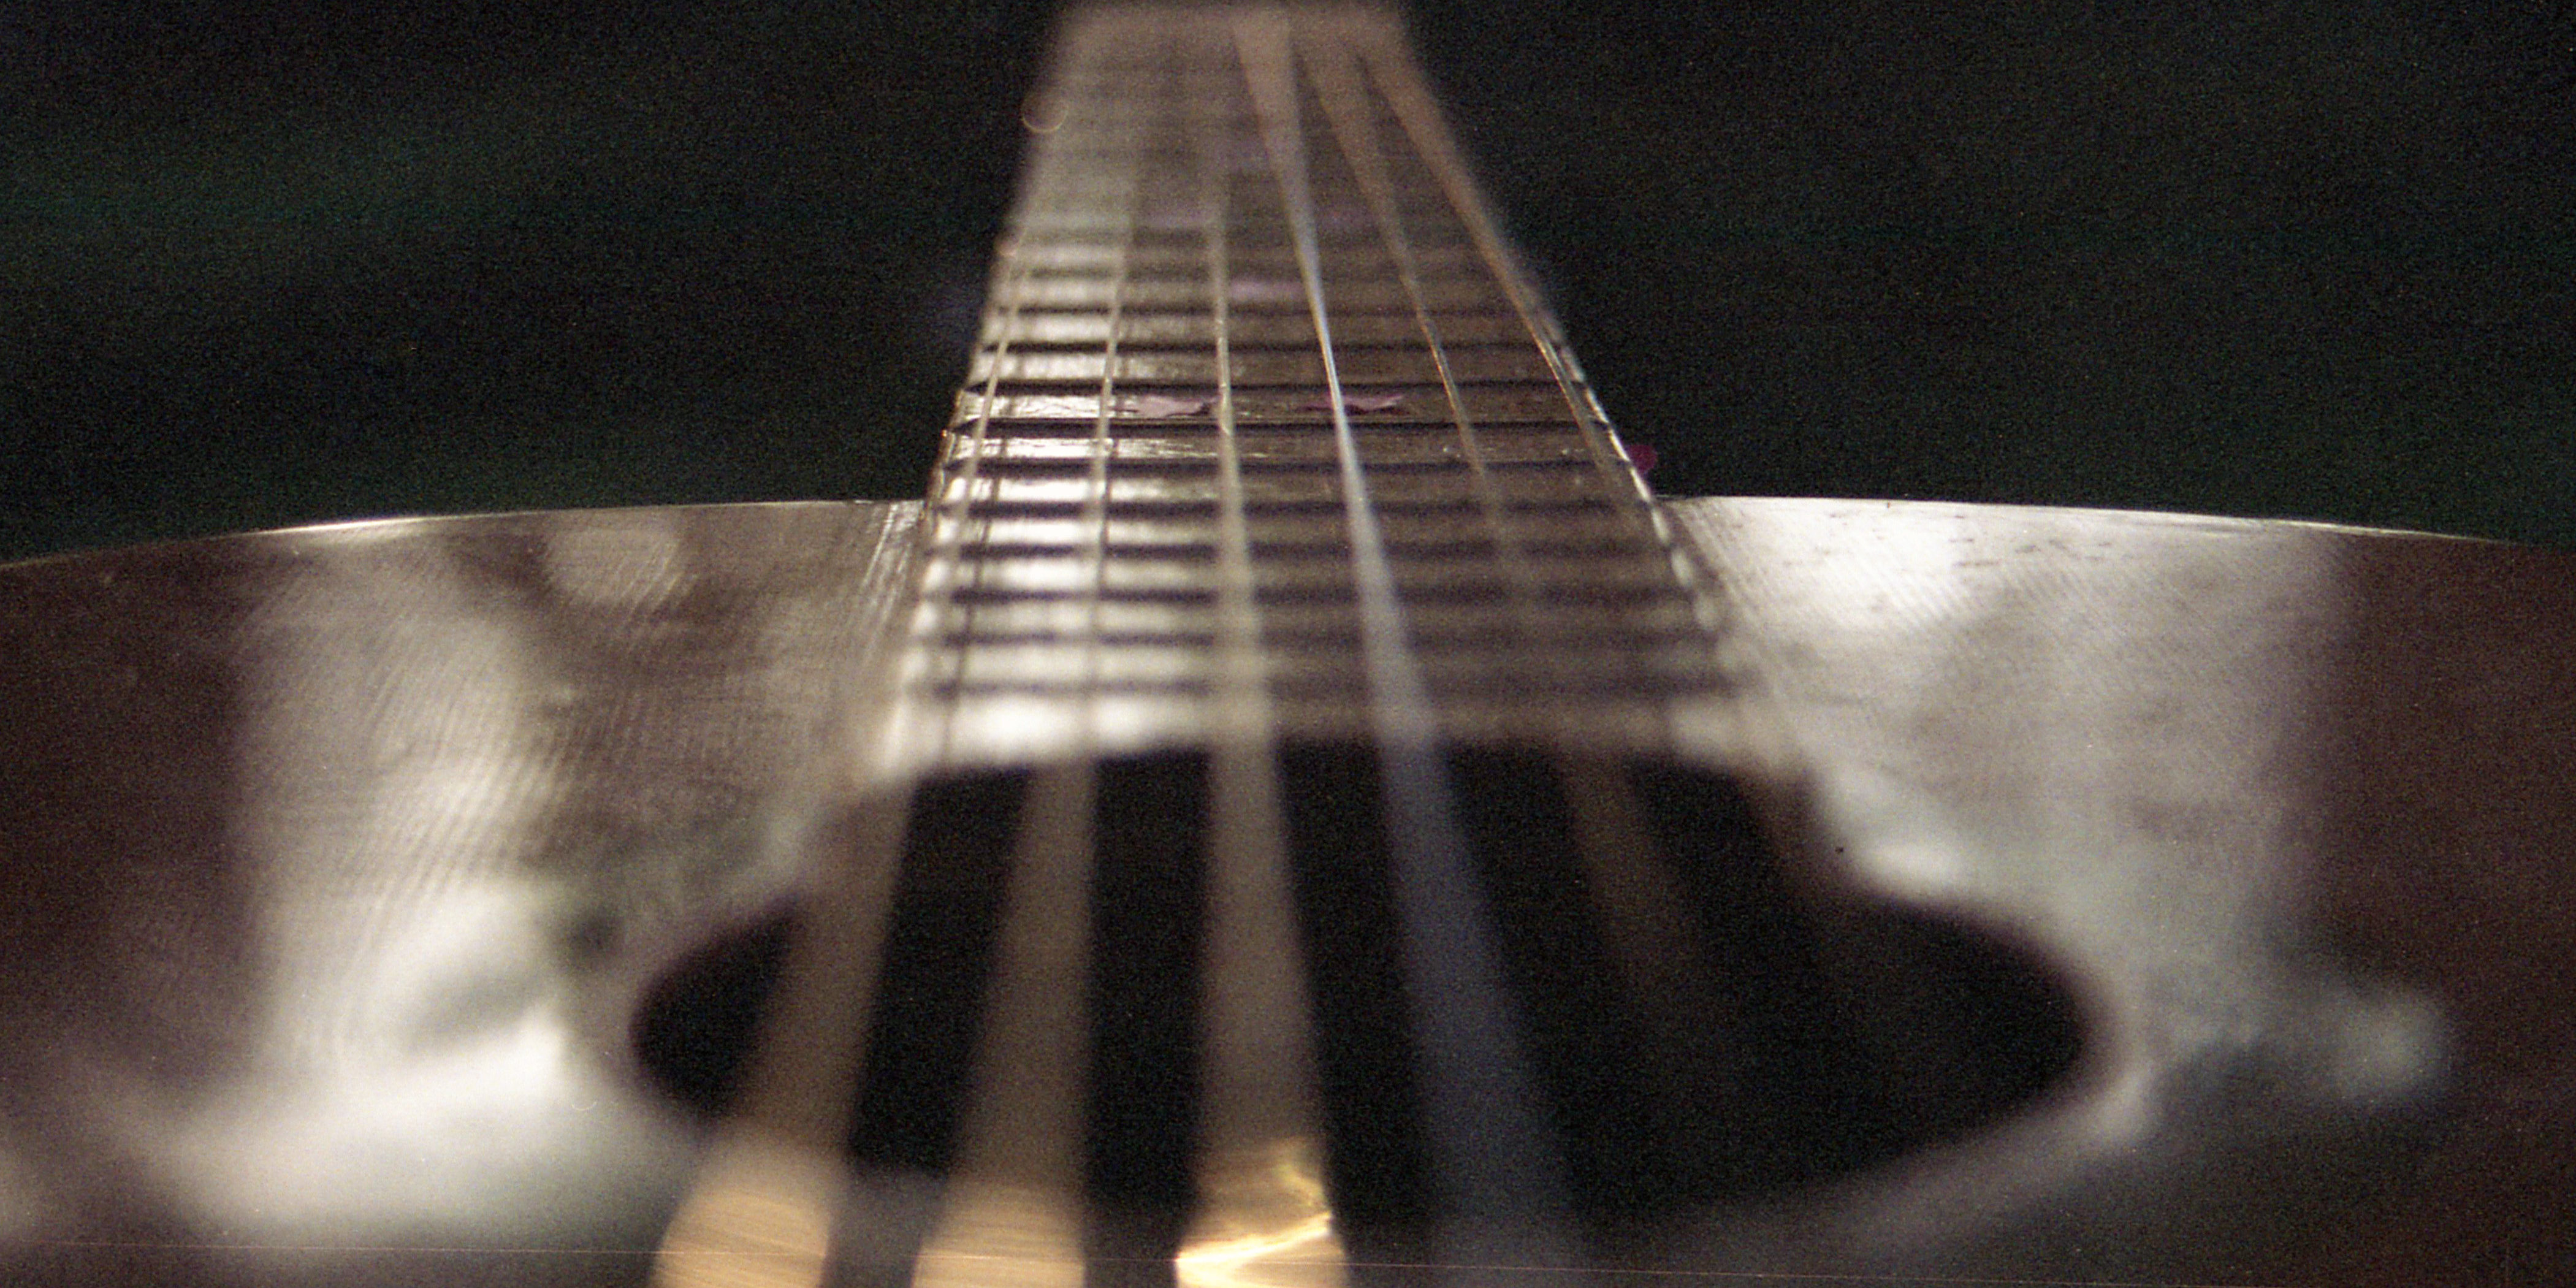 image of the top of a guitar nearly at the same eye level as the viewer, with the strings moving from the body of the guitar to off the center in a blurry line.